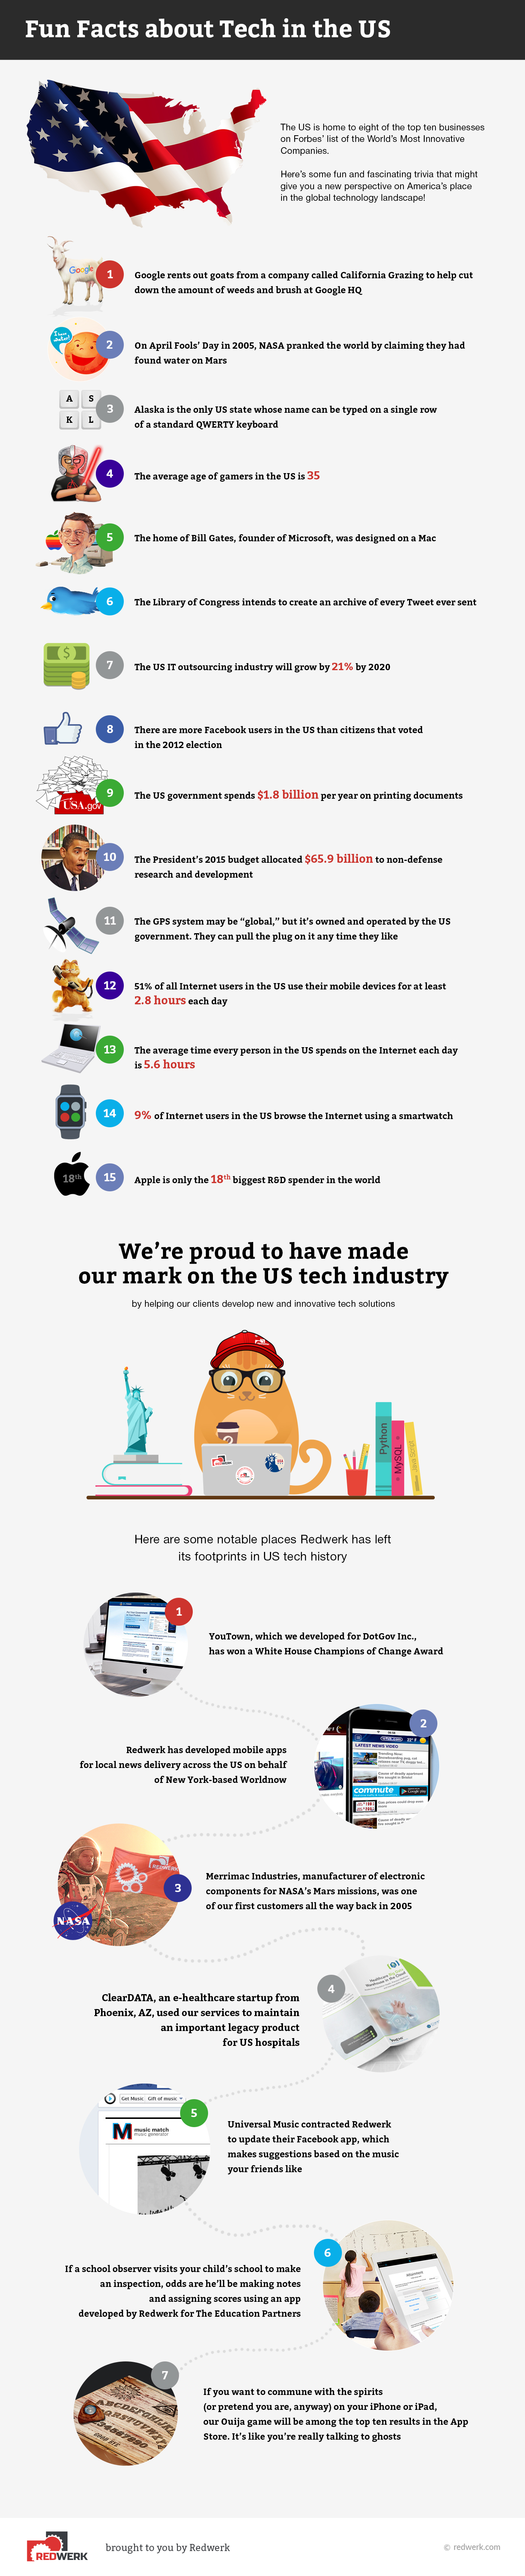 Fascinating Facts About the USA Tech Industry